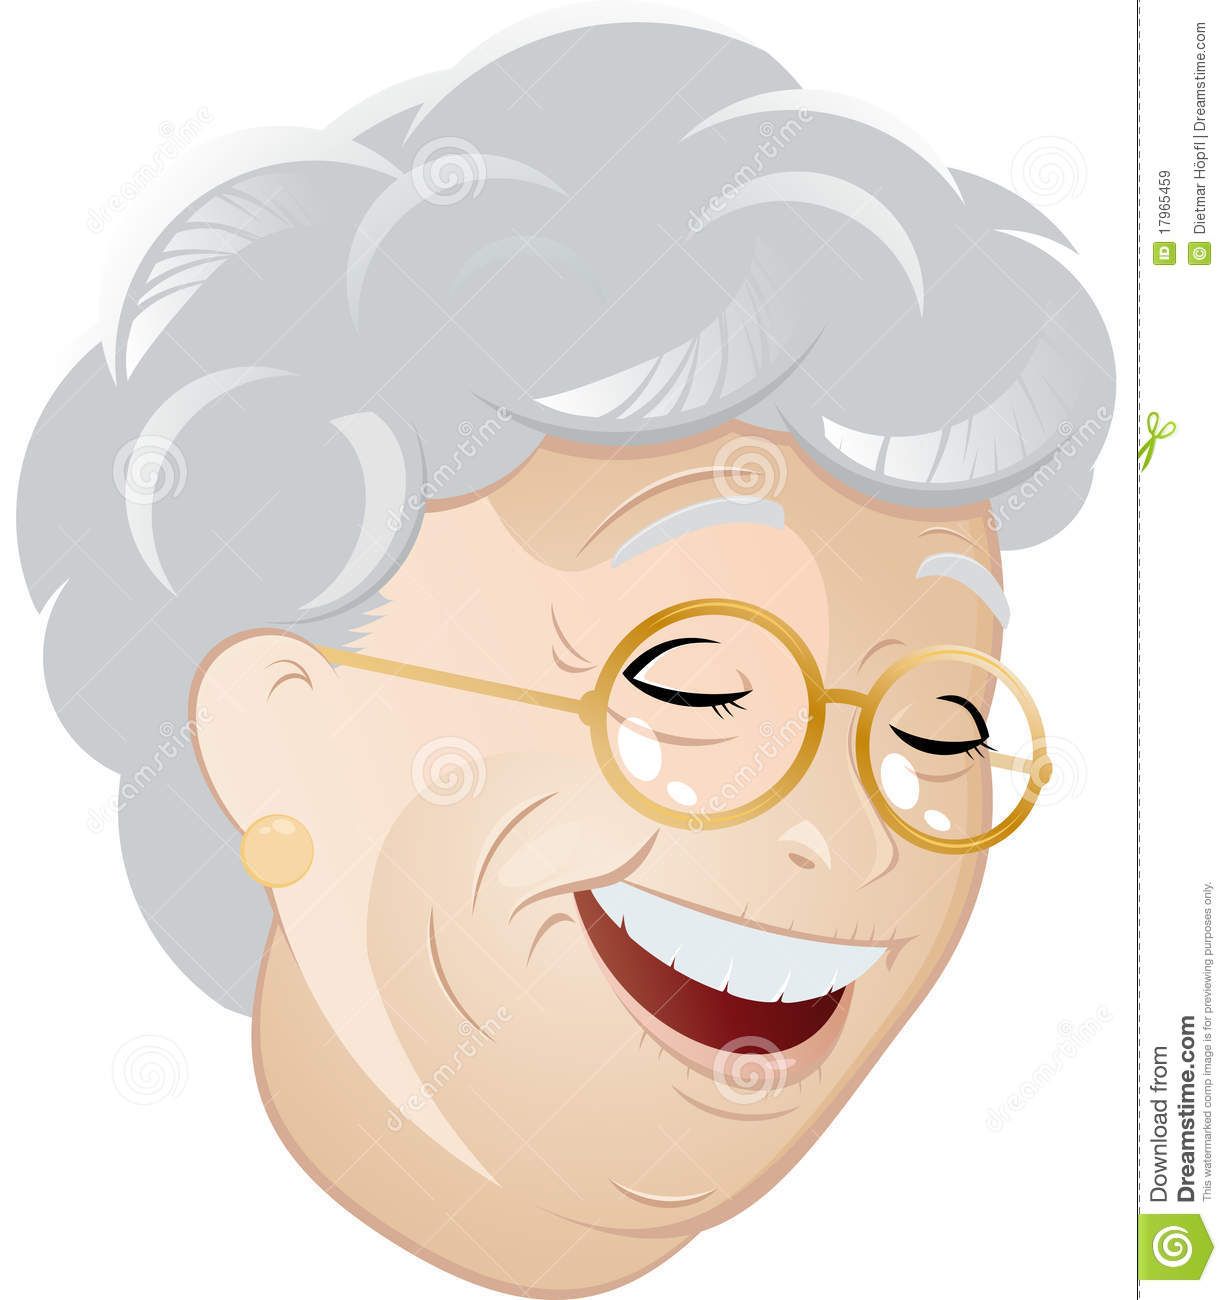 Laughing cartoon grandma stock vector. Illustration of ...